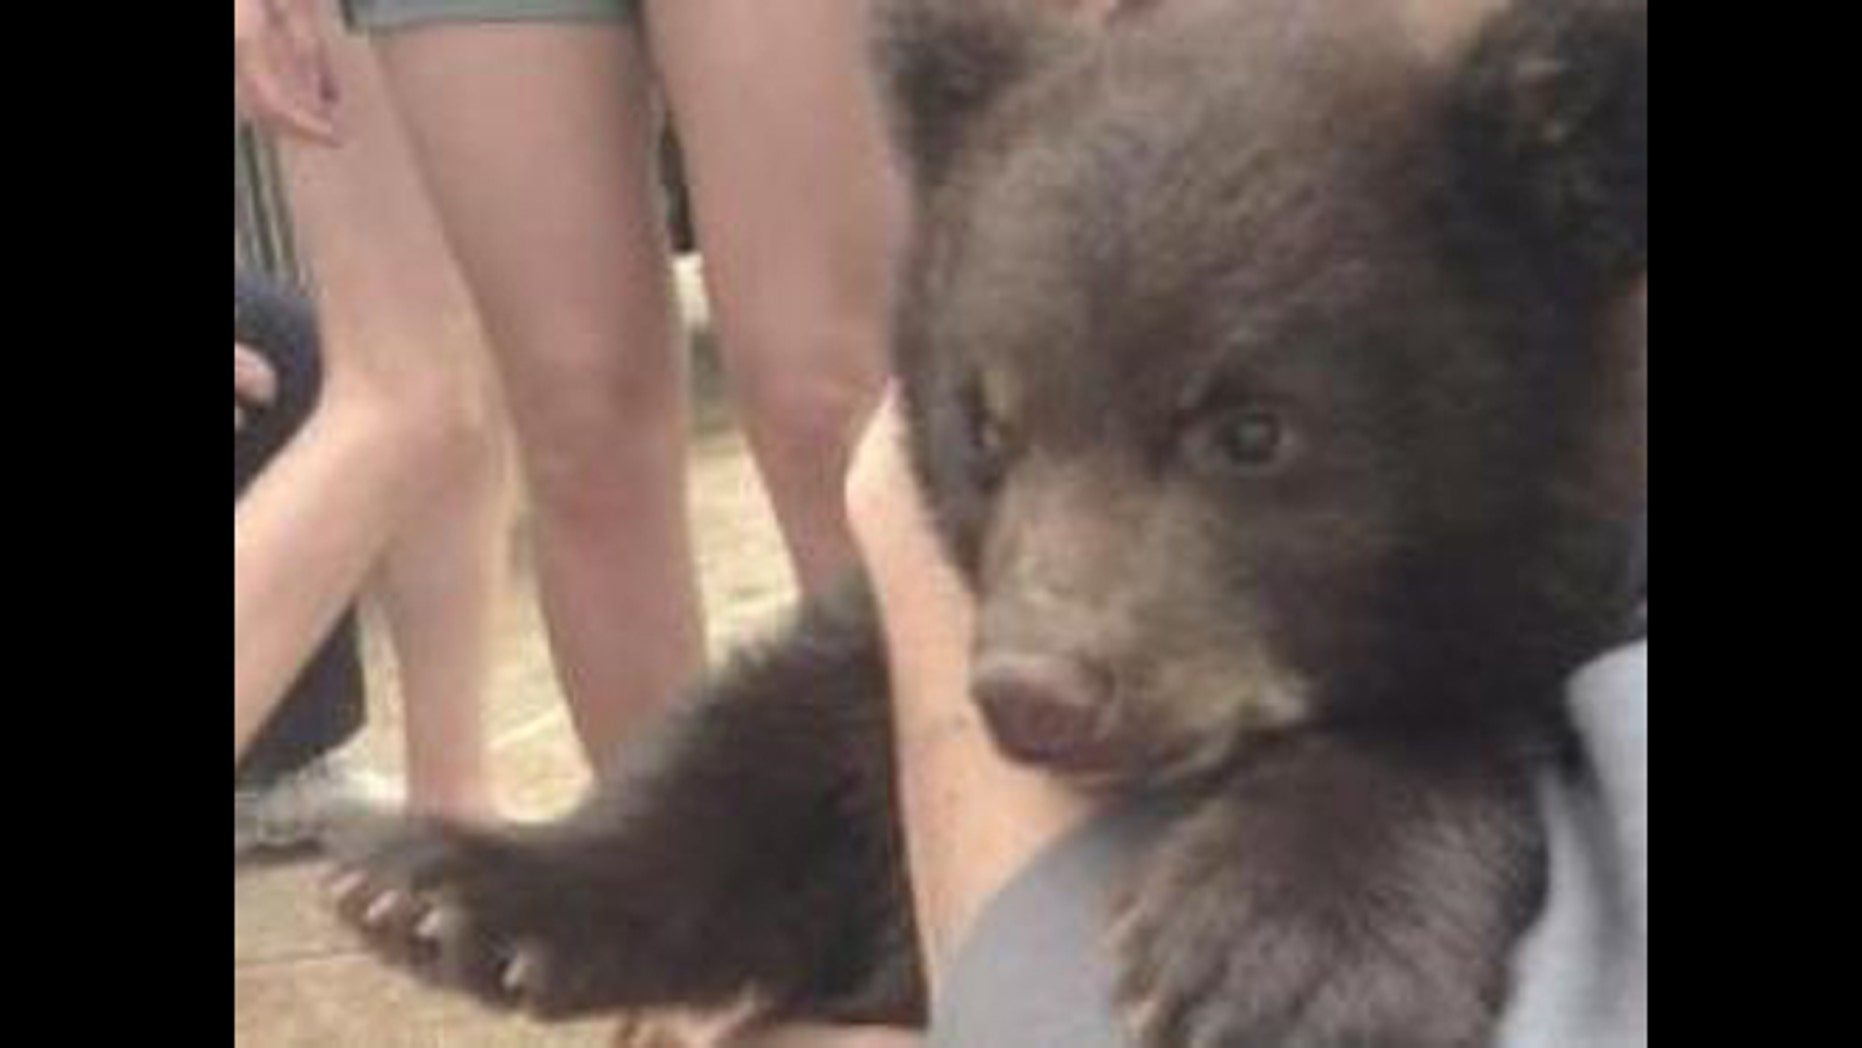 Boo Boo the bear cub, shown here, is now living at the St. Louis zoo.